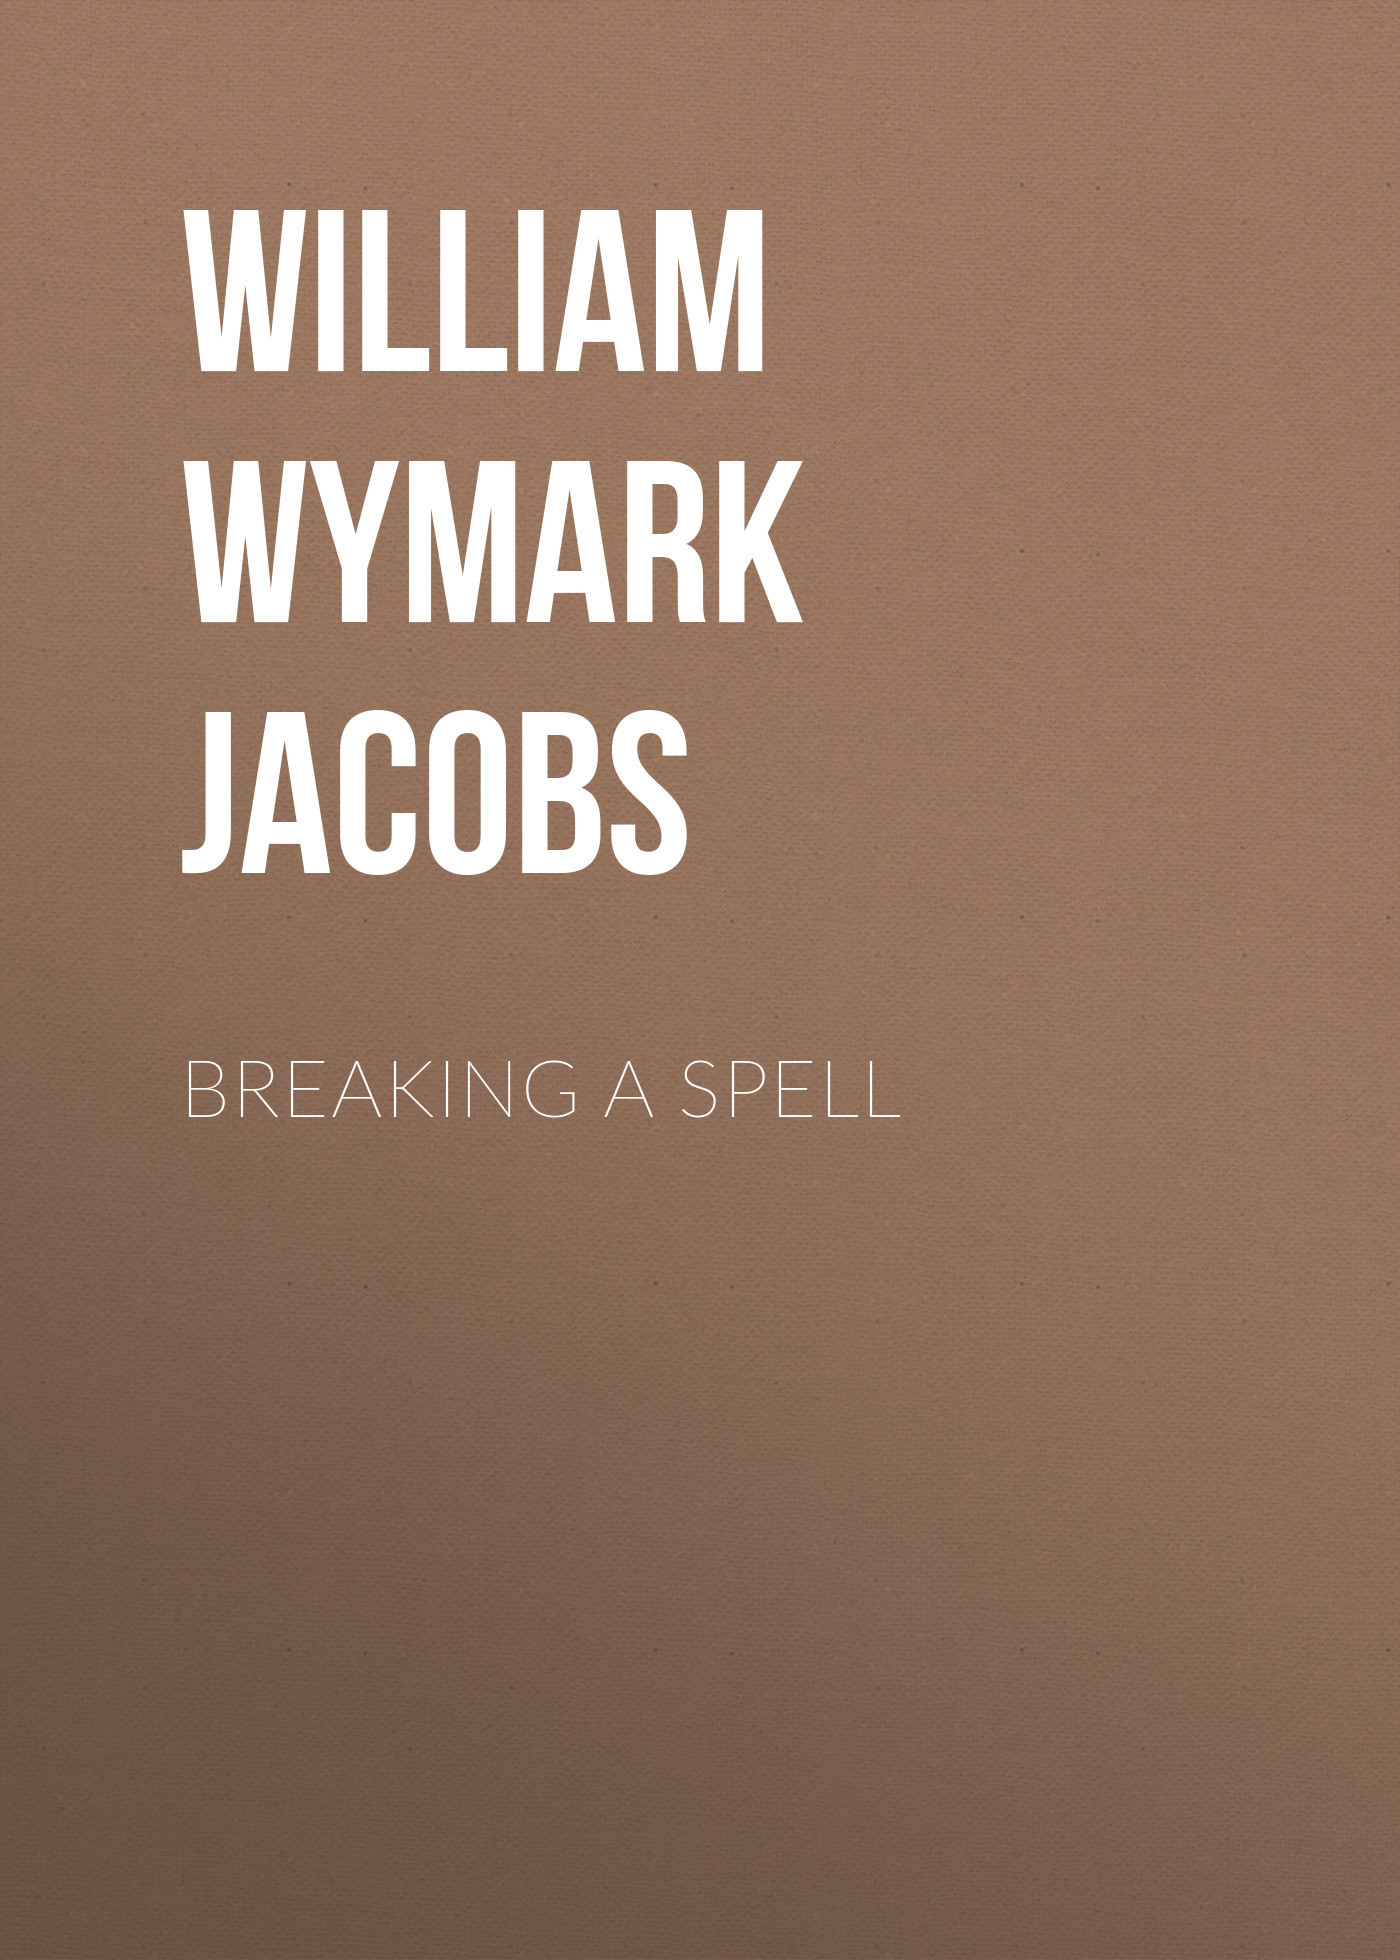 William Wymark Jacobs Breaking a Spell татьяна олива моралес the comparative typology of spanish and english texts story and anecdotes for reading translating and retelling in spanish and english adapted by © linguistic rescue method level a1 a2